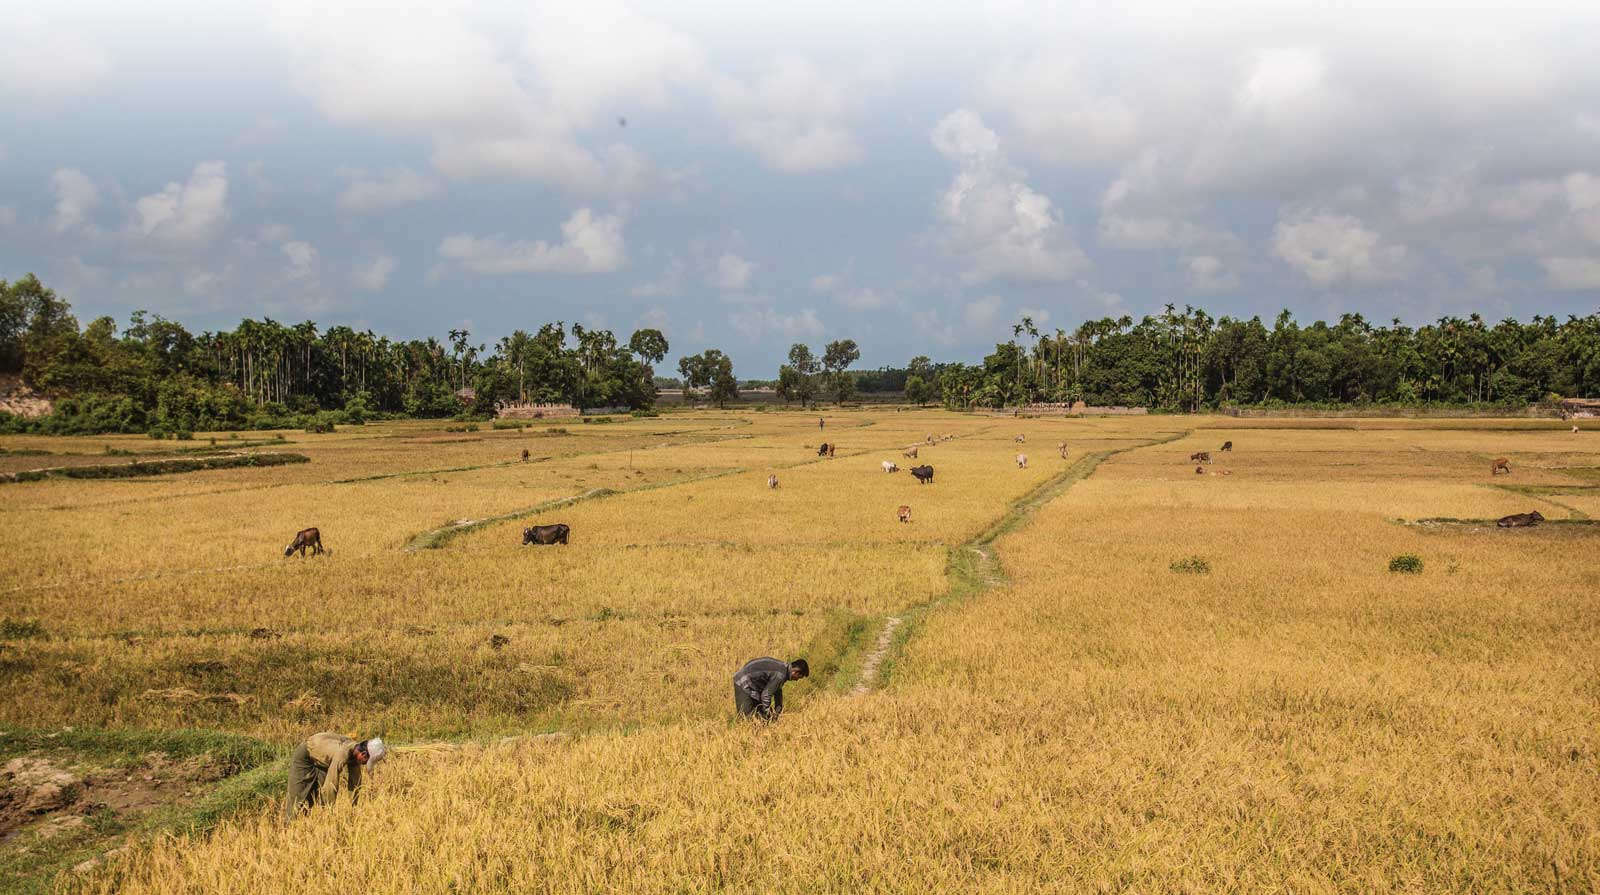 Maungdaw, Myanmar - Farm laborers and livestocks in a paddy field. Image: FAO / Hkun La